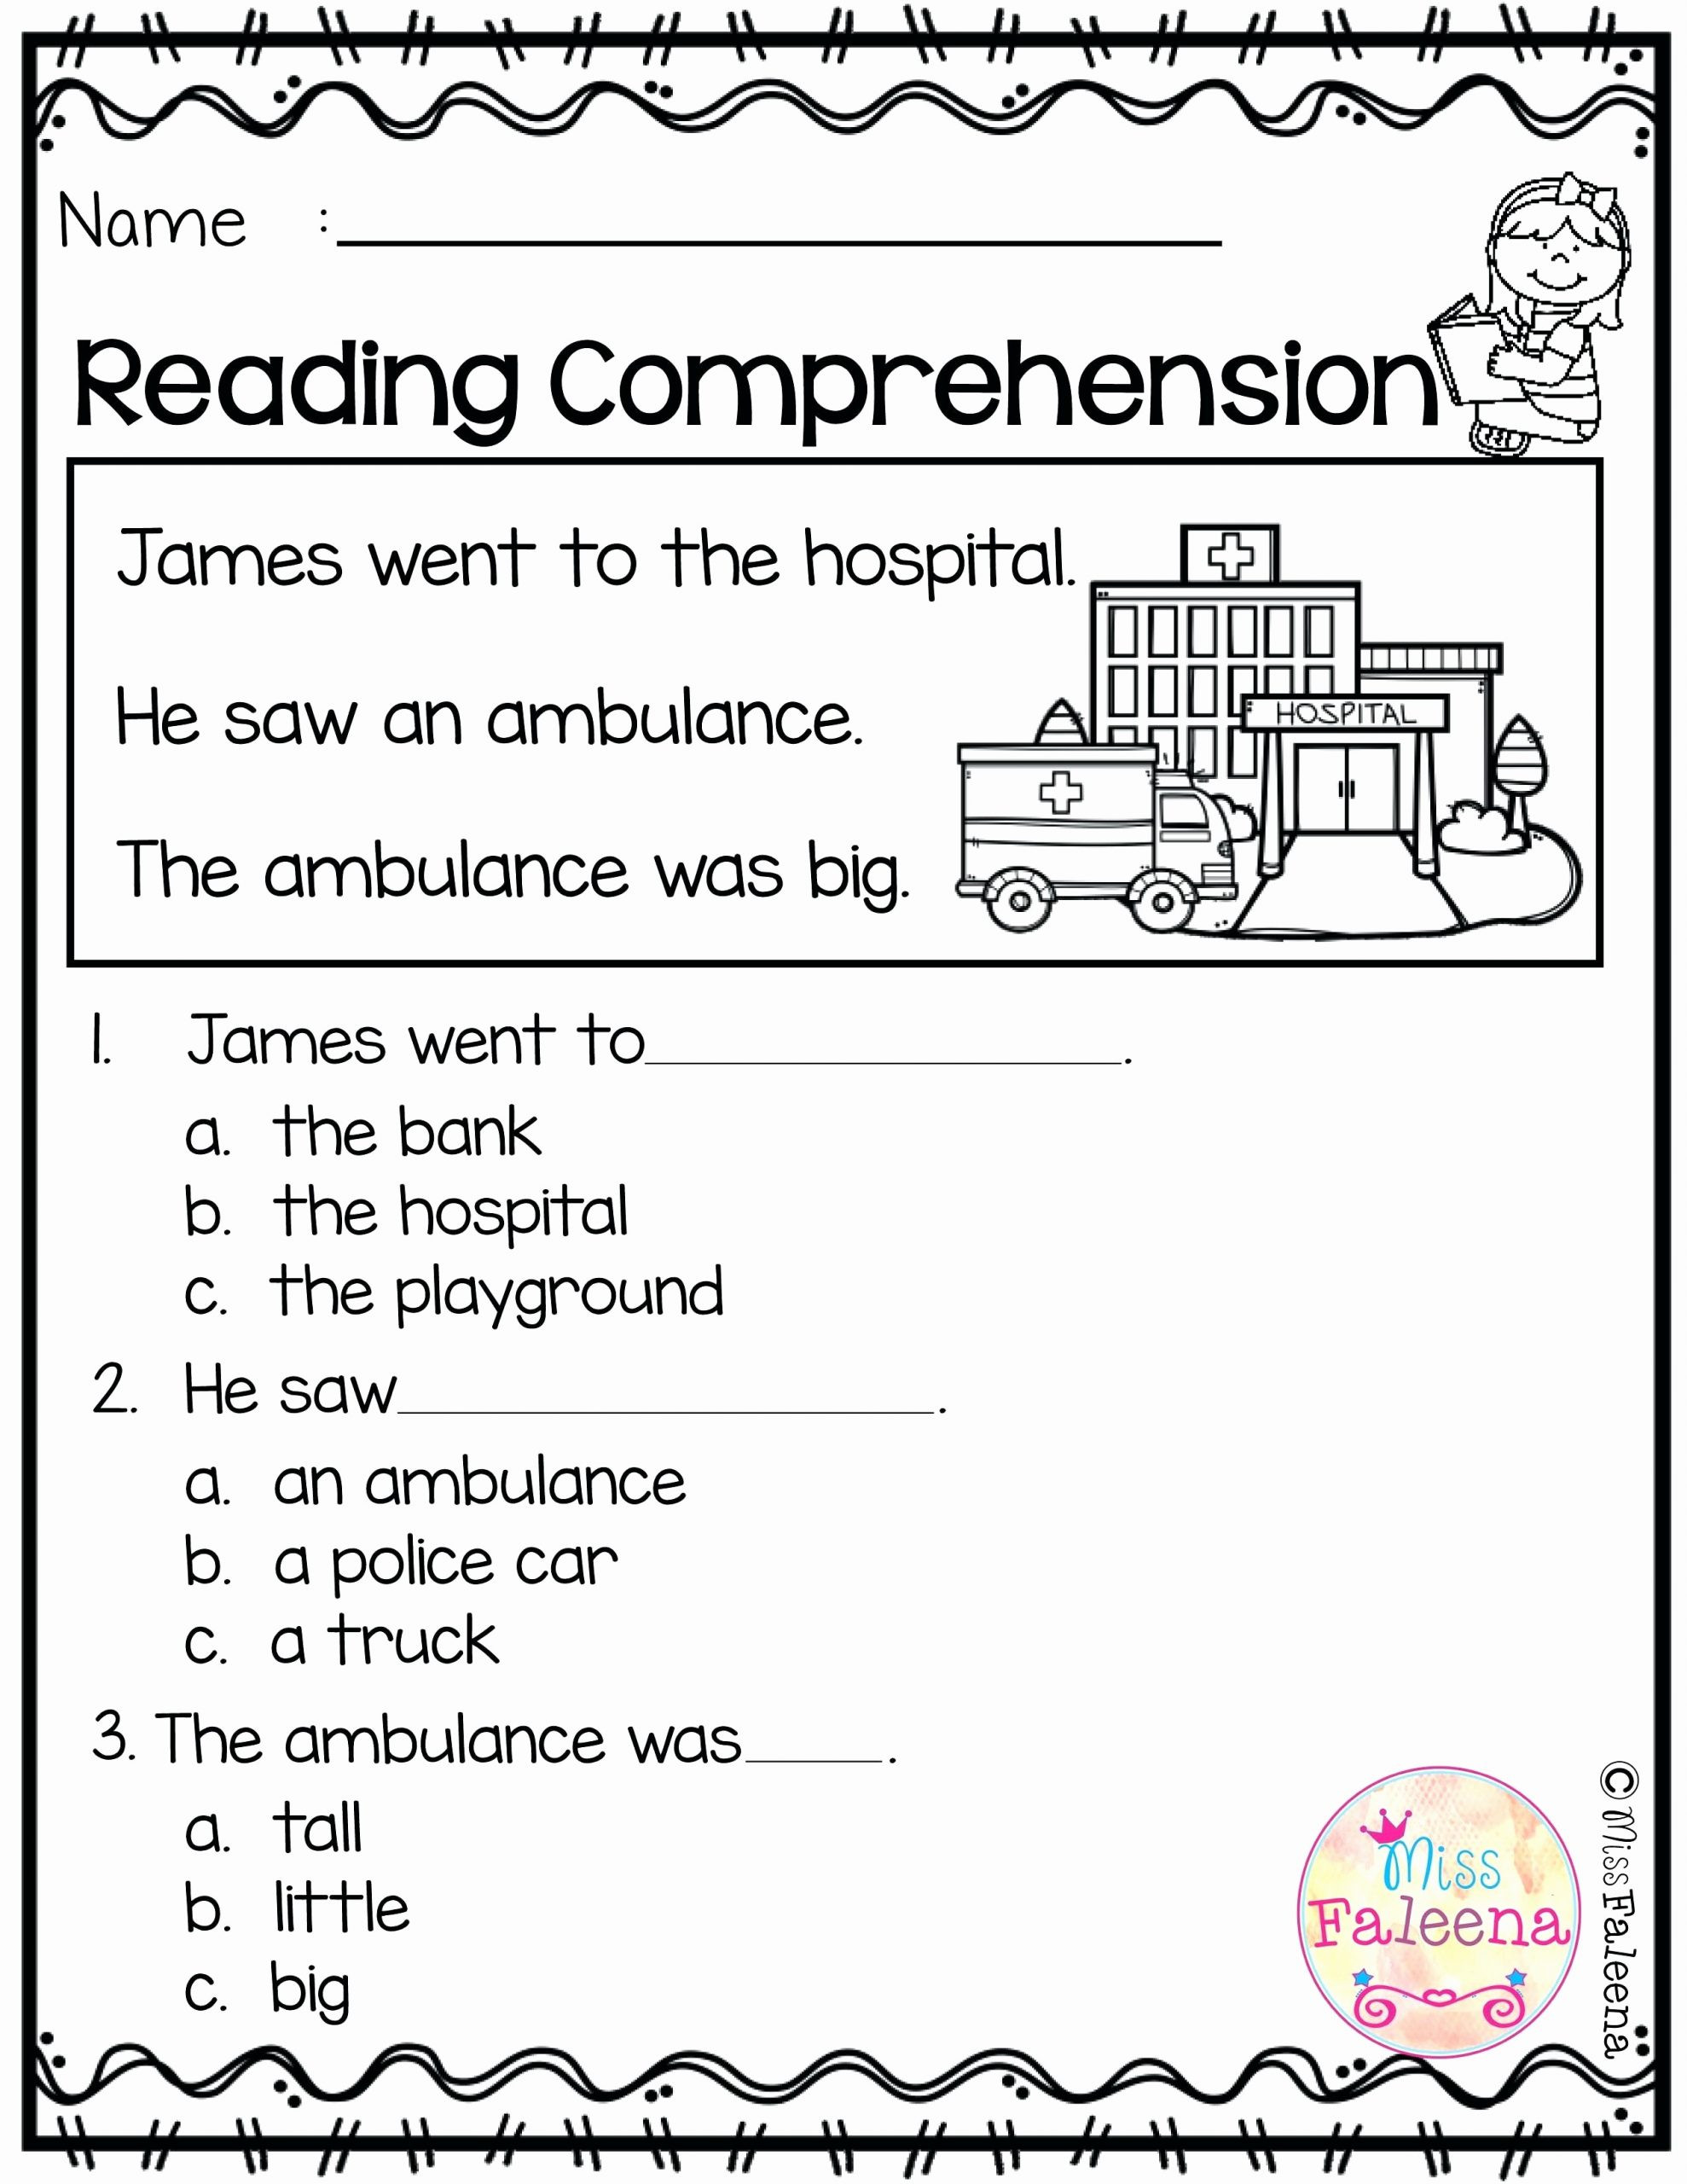 Preschool Reading Comprehension Worksheets Learn Line Kindergarten Grade Reading Worksheets